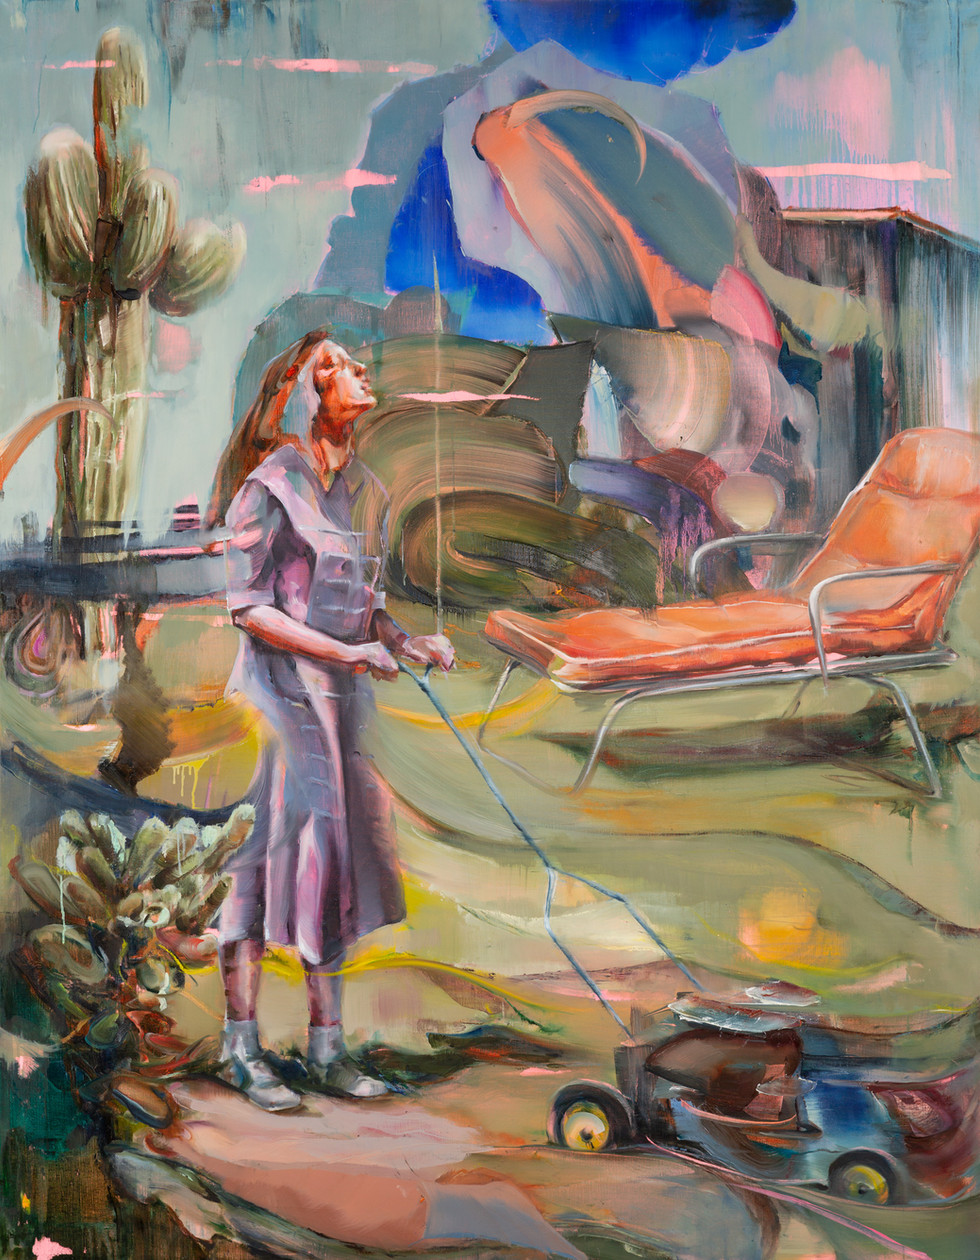 Lawnmovergirl, 180 x 140 cm, oil on linen, 2018